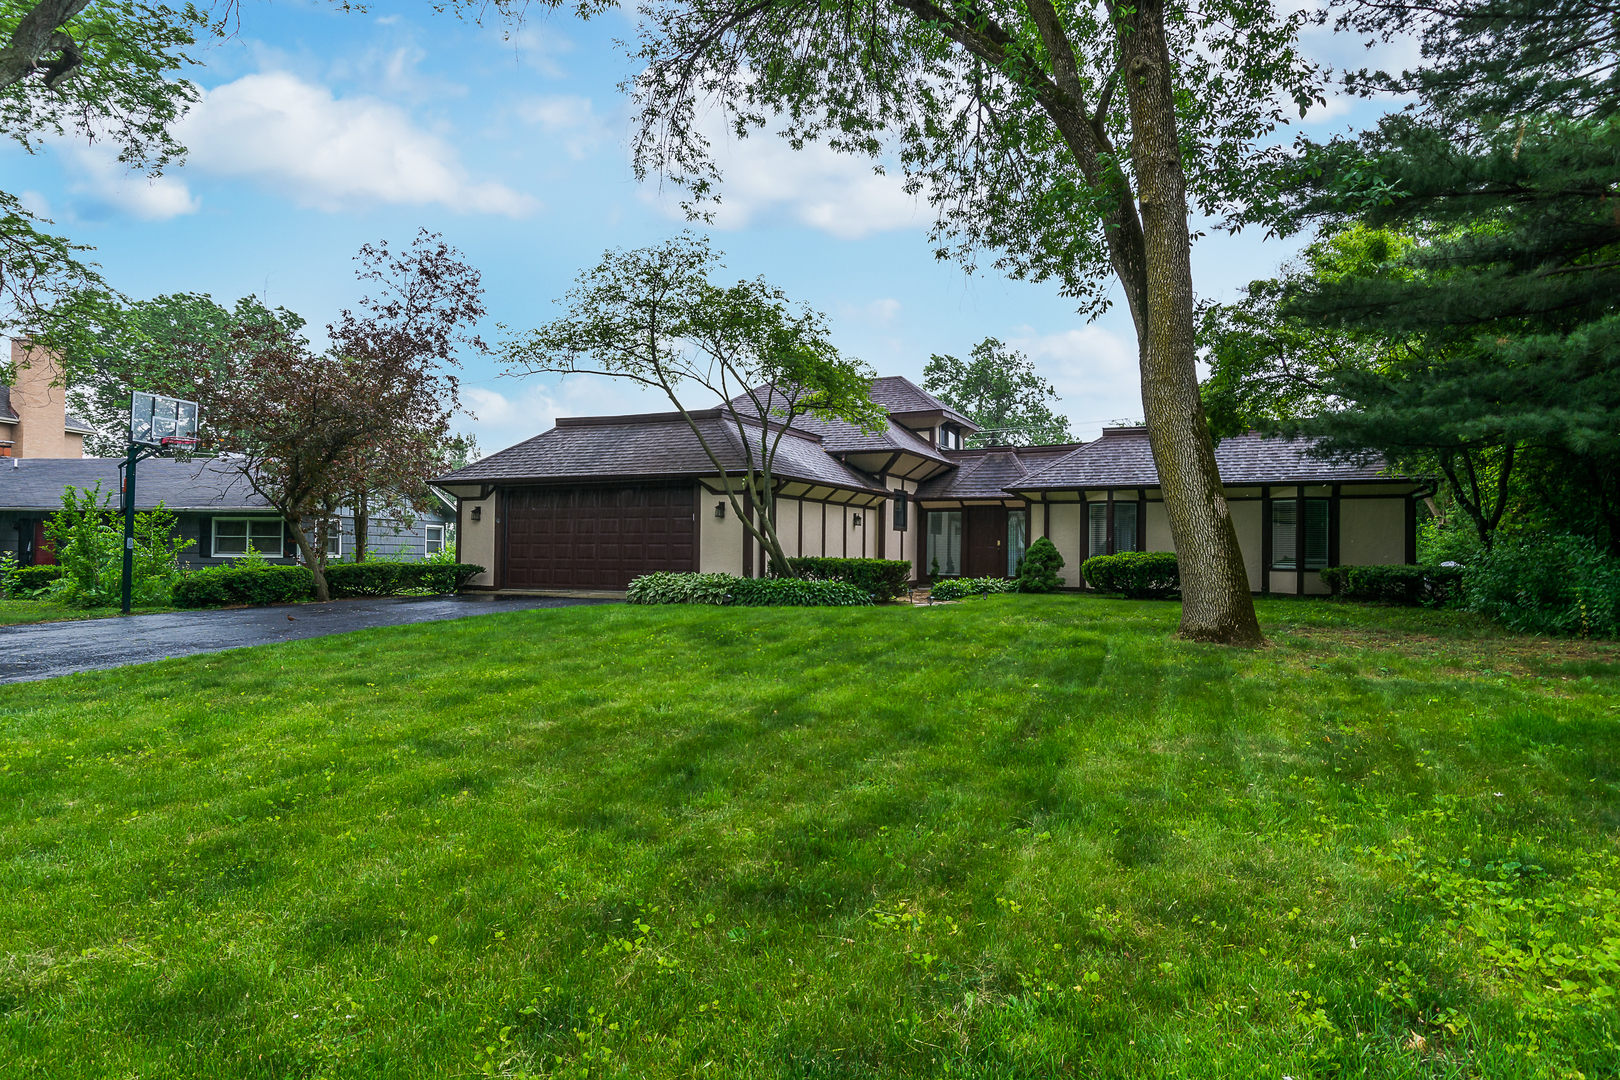 544 West 58th Place, Hinsdale, Illinois 60521